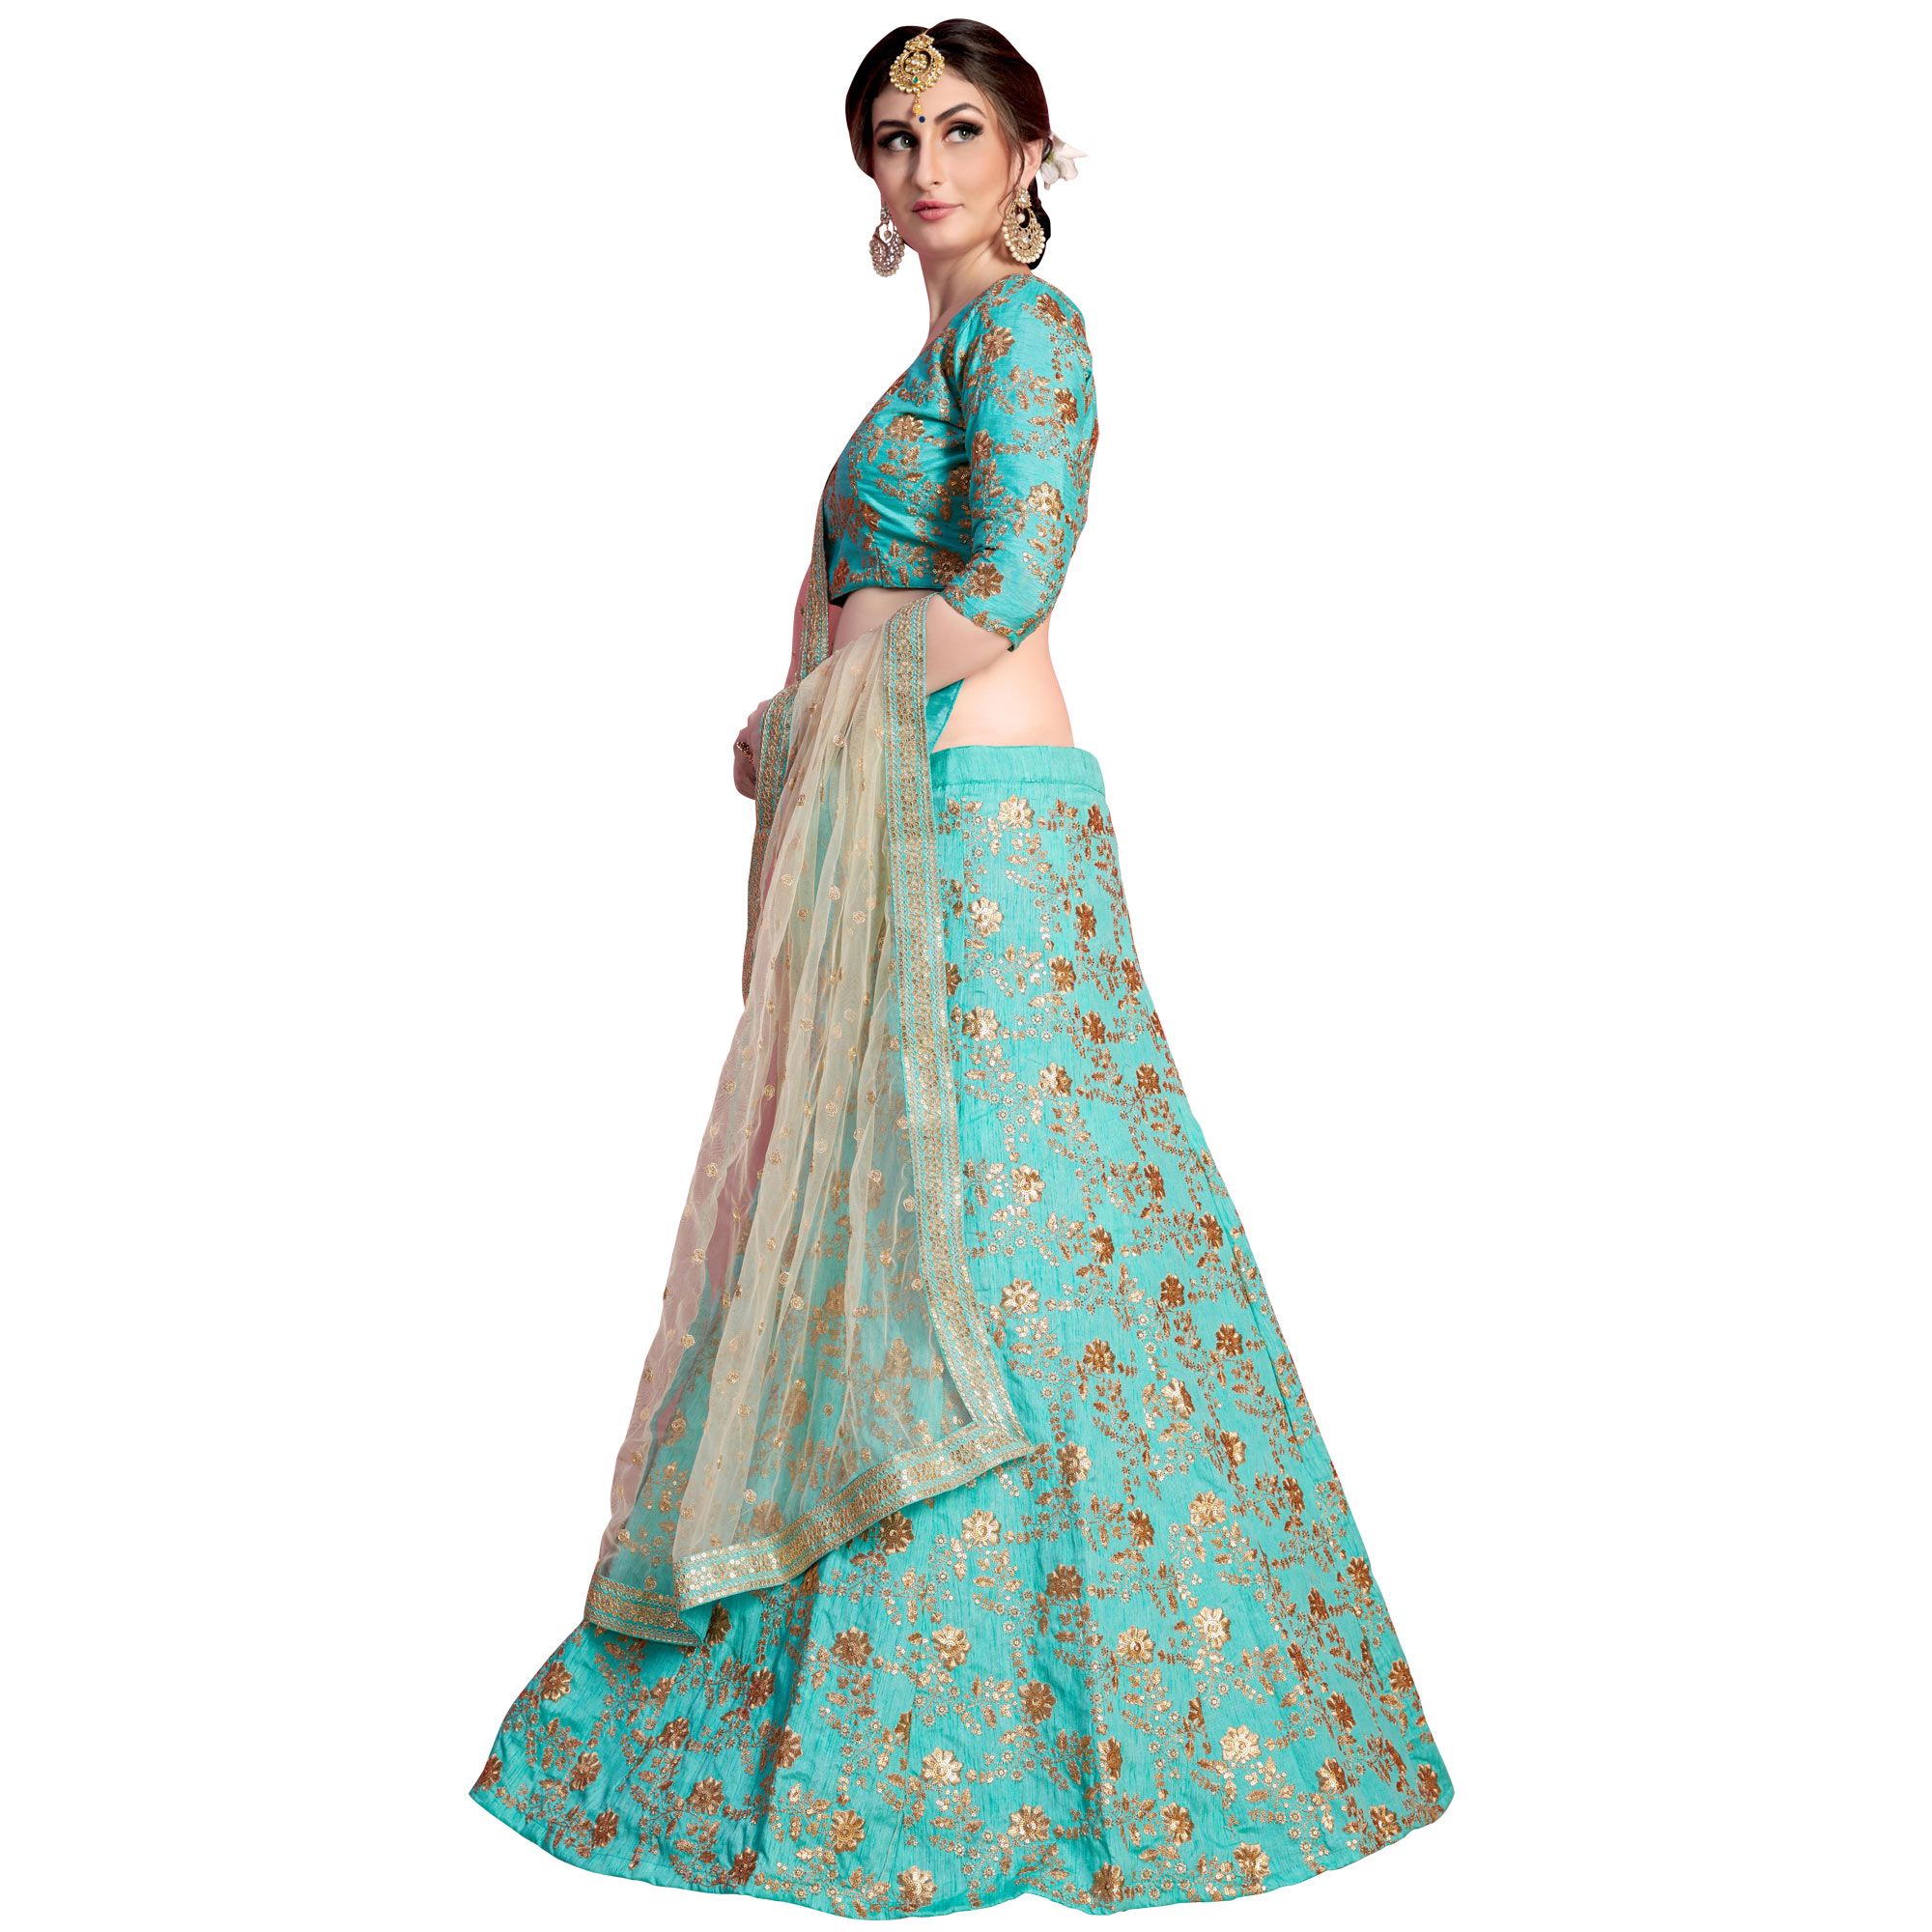 Stunning Aqua Blue Colored Partywear Embroidered Art Silk Lehenga Choli